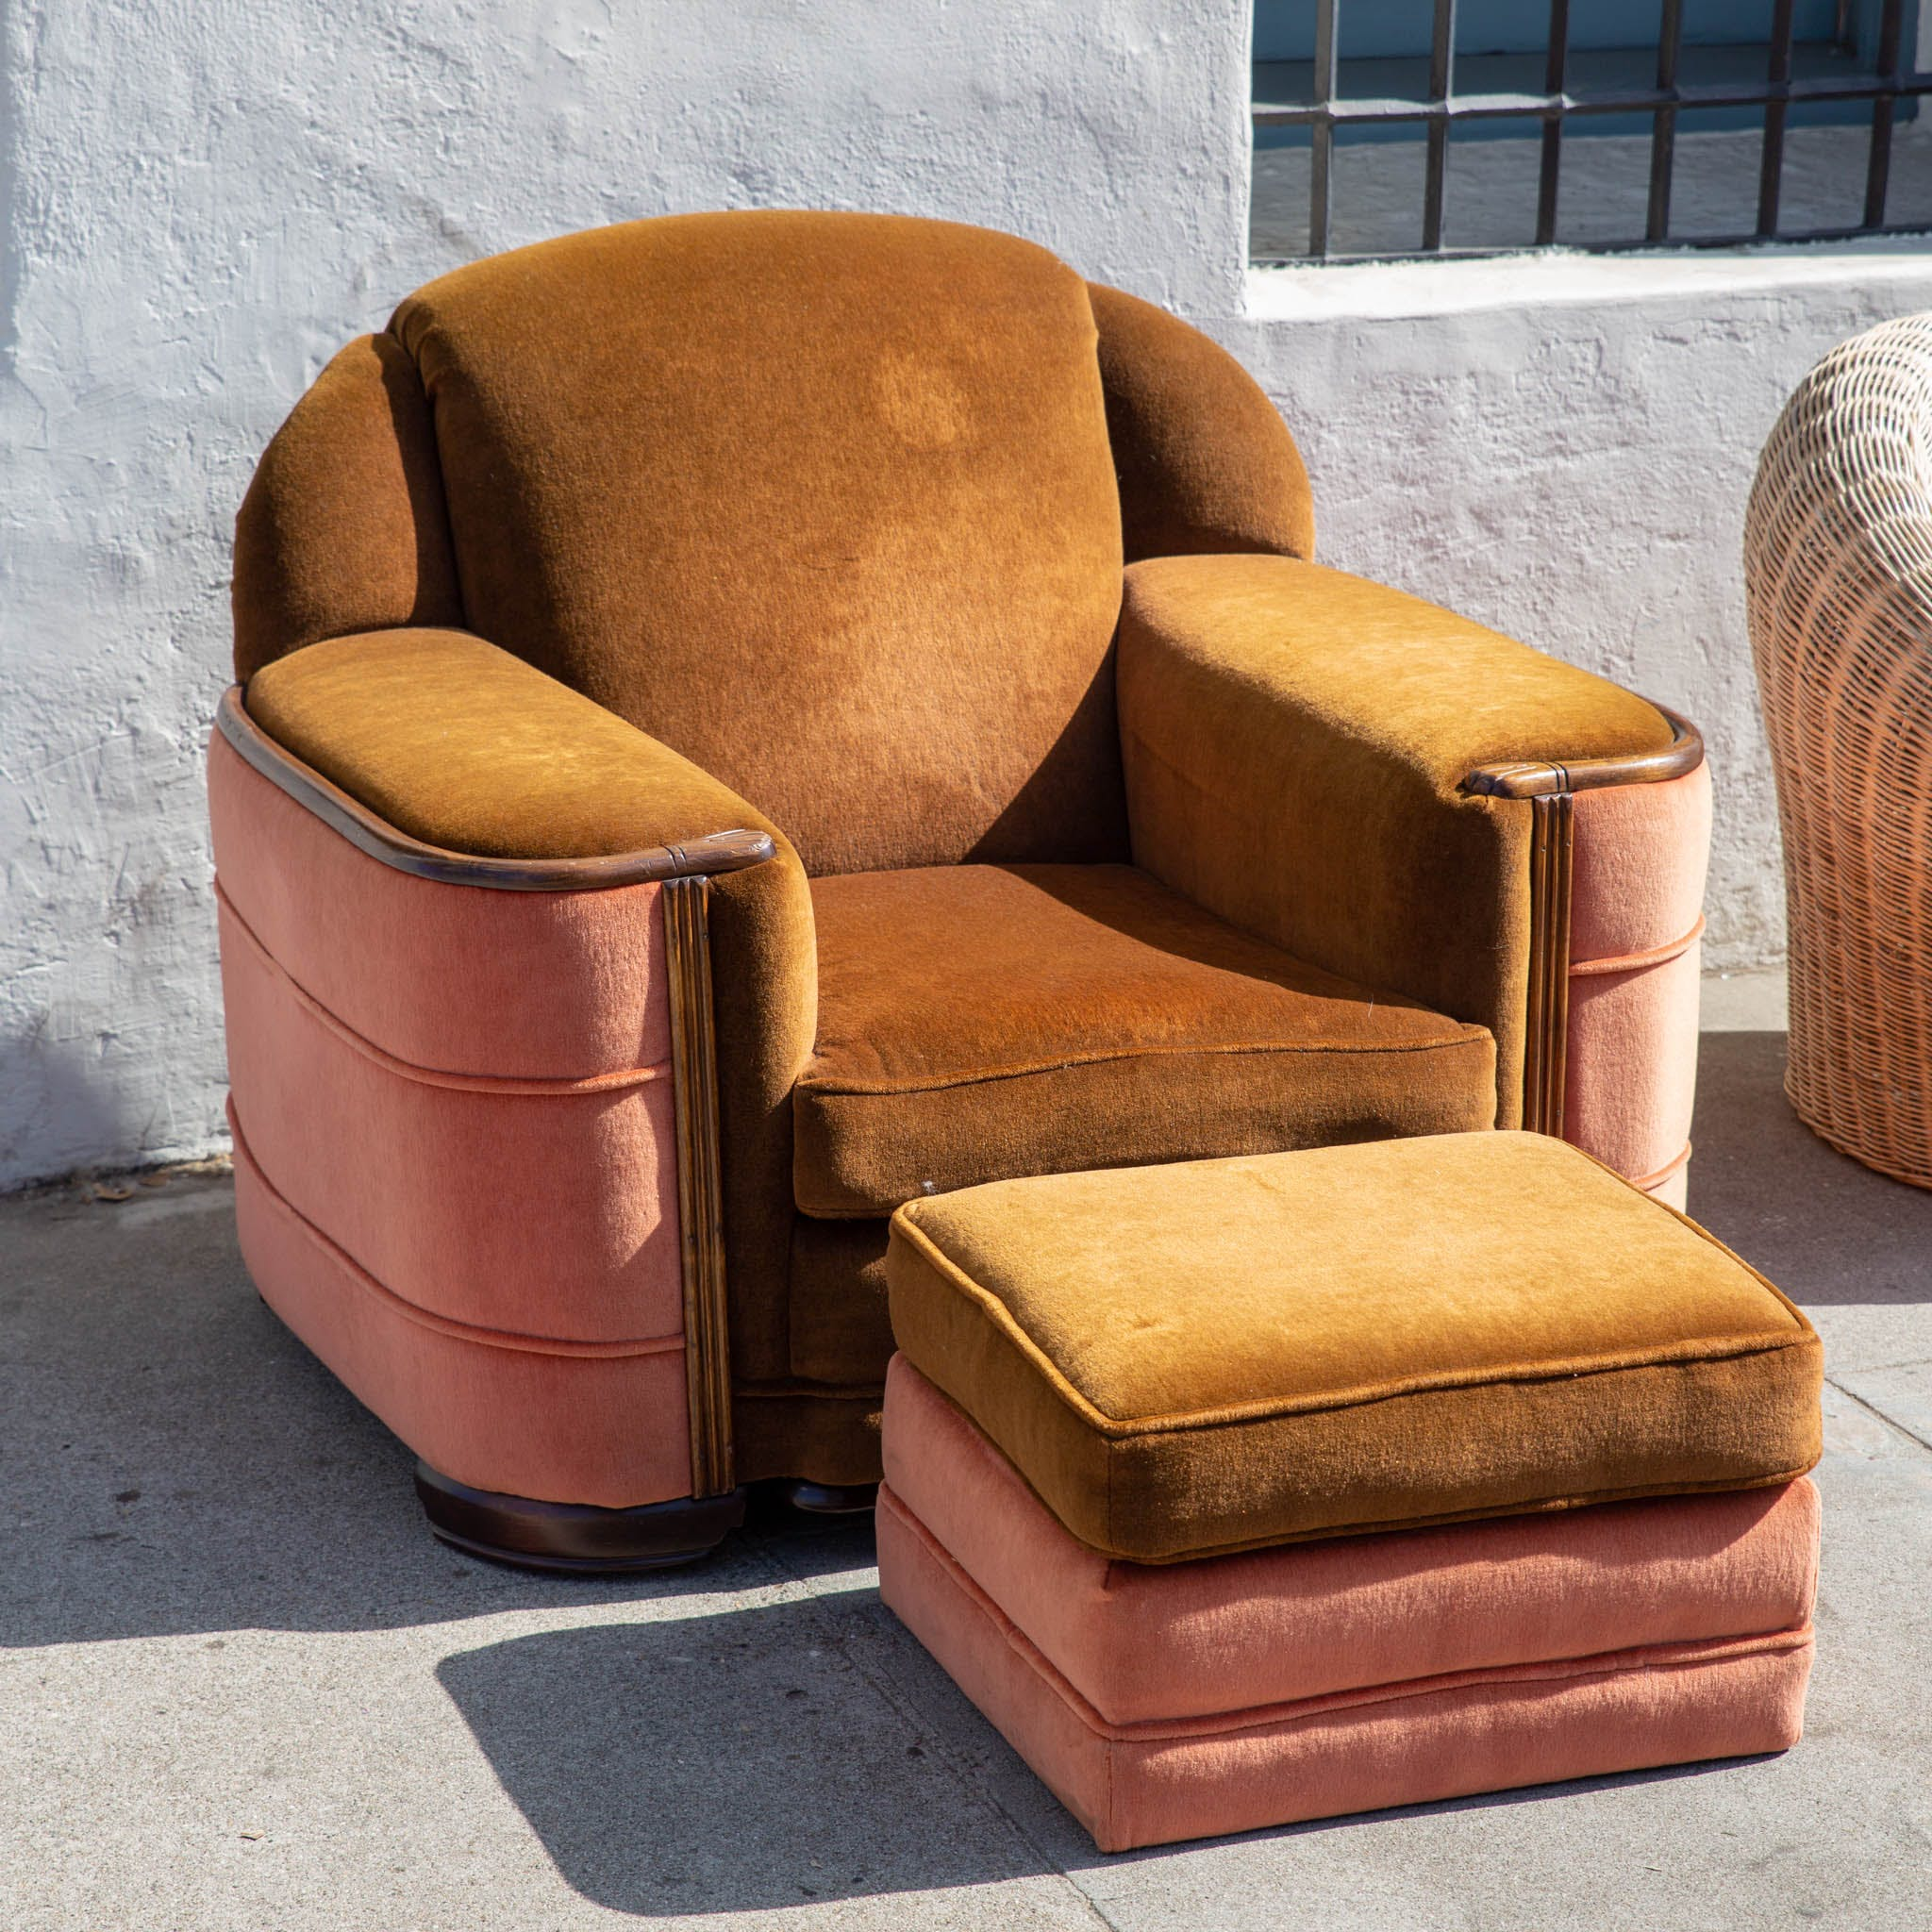 1920s Art Deco Club Chair and Ottoman with Original